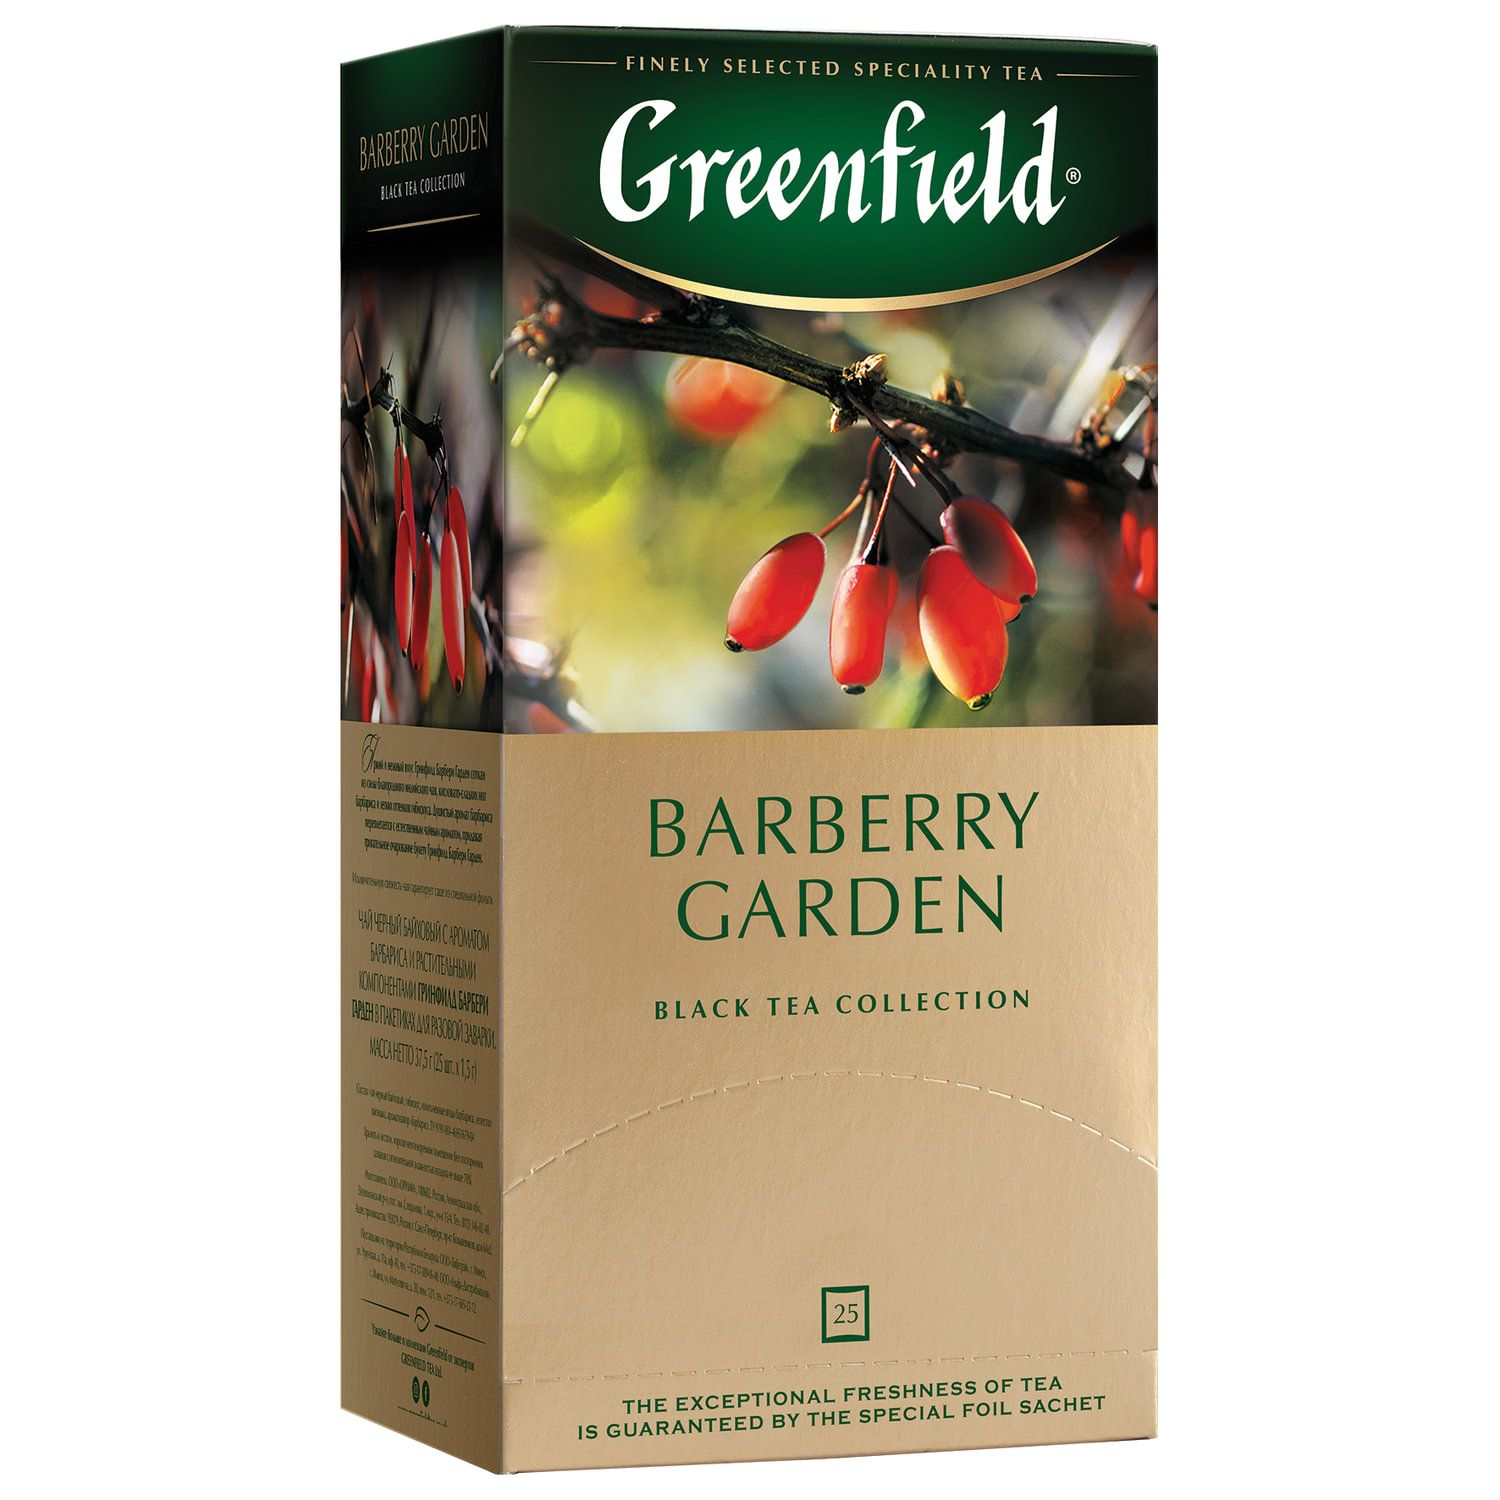 "GREENFIELD / Tea ""Barberry Garden"" black with barberry flavor, 25 teabags in envelopes 2 g each"